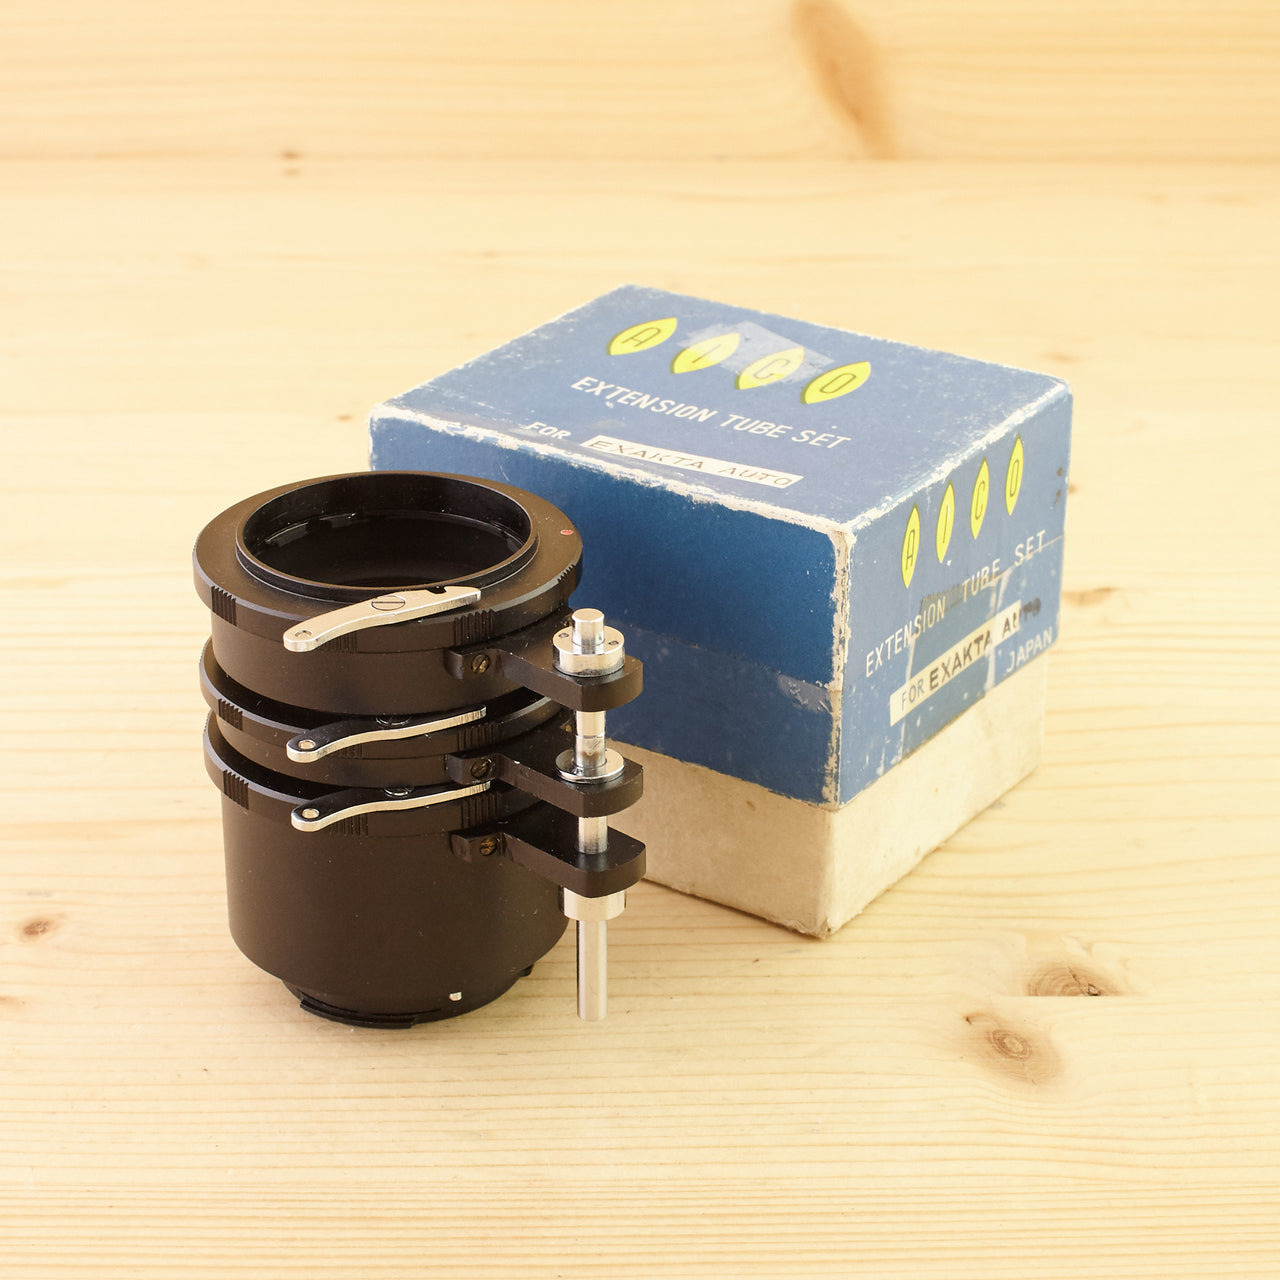 Exakta Fit Aico Auto Extension Tube Set Exc Boxed